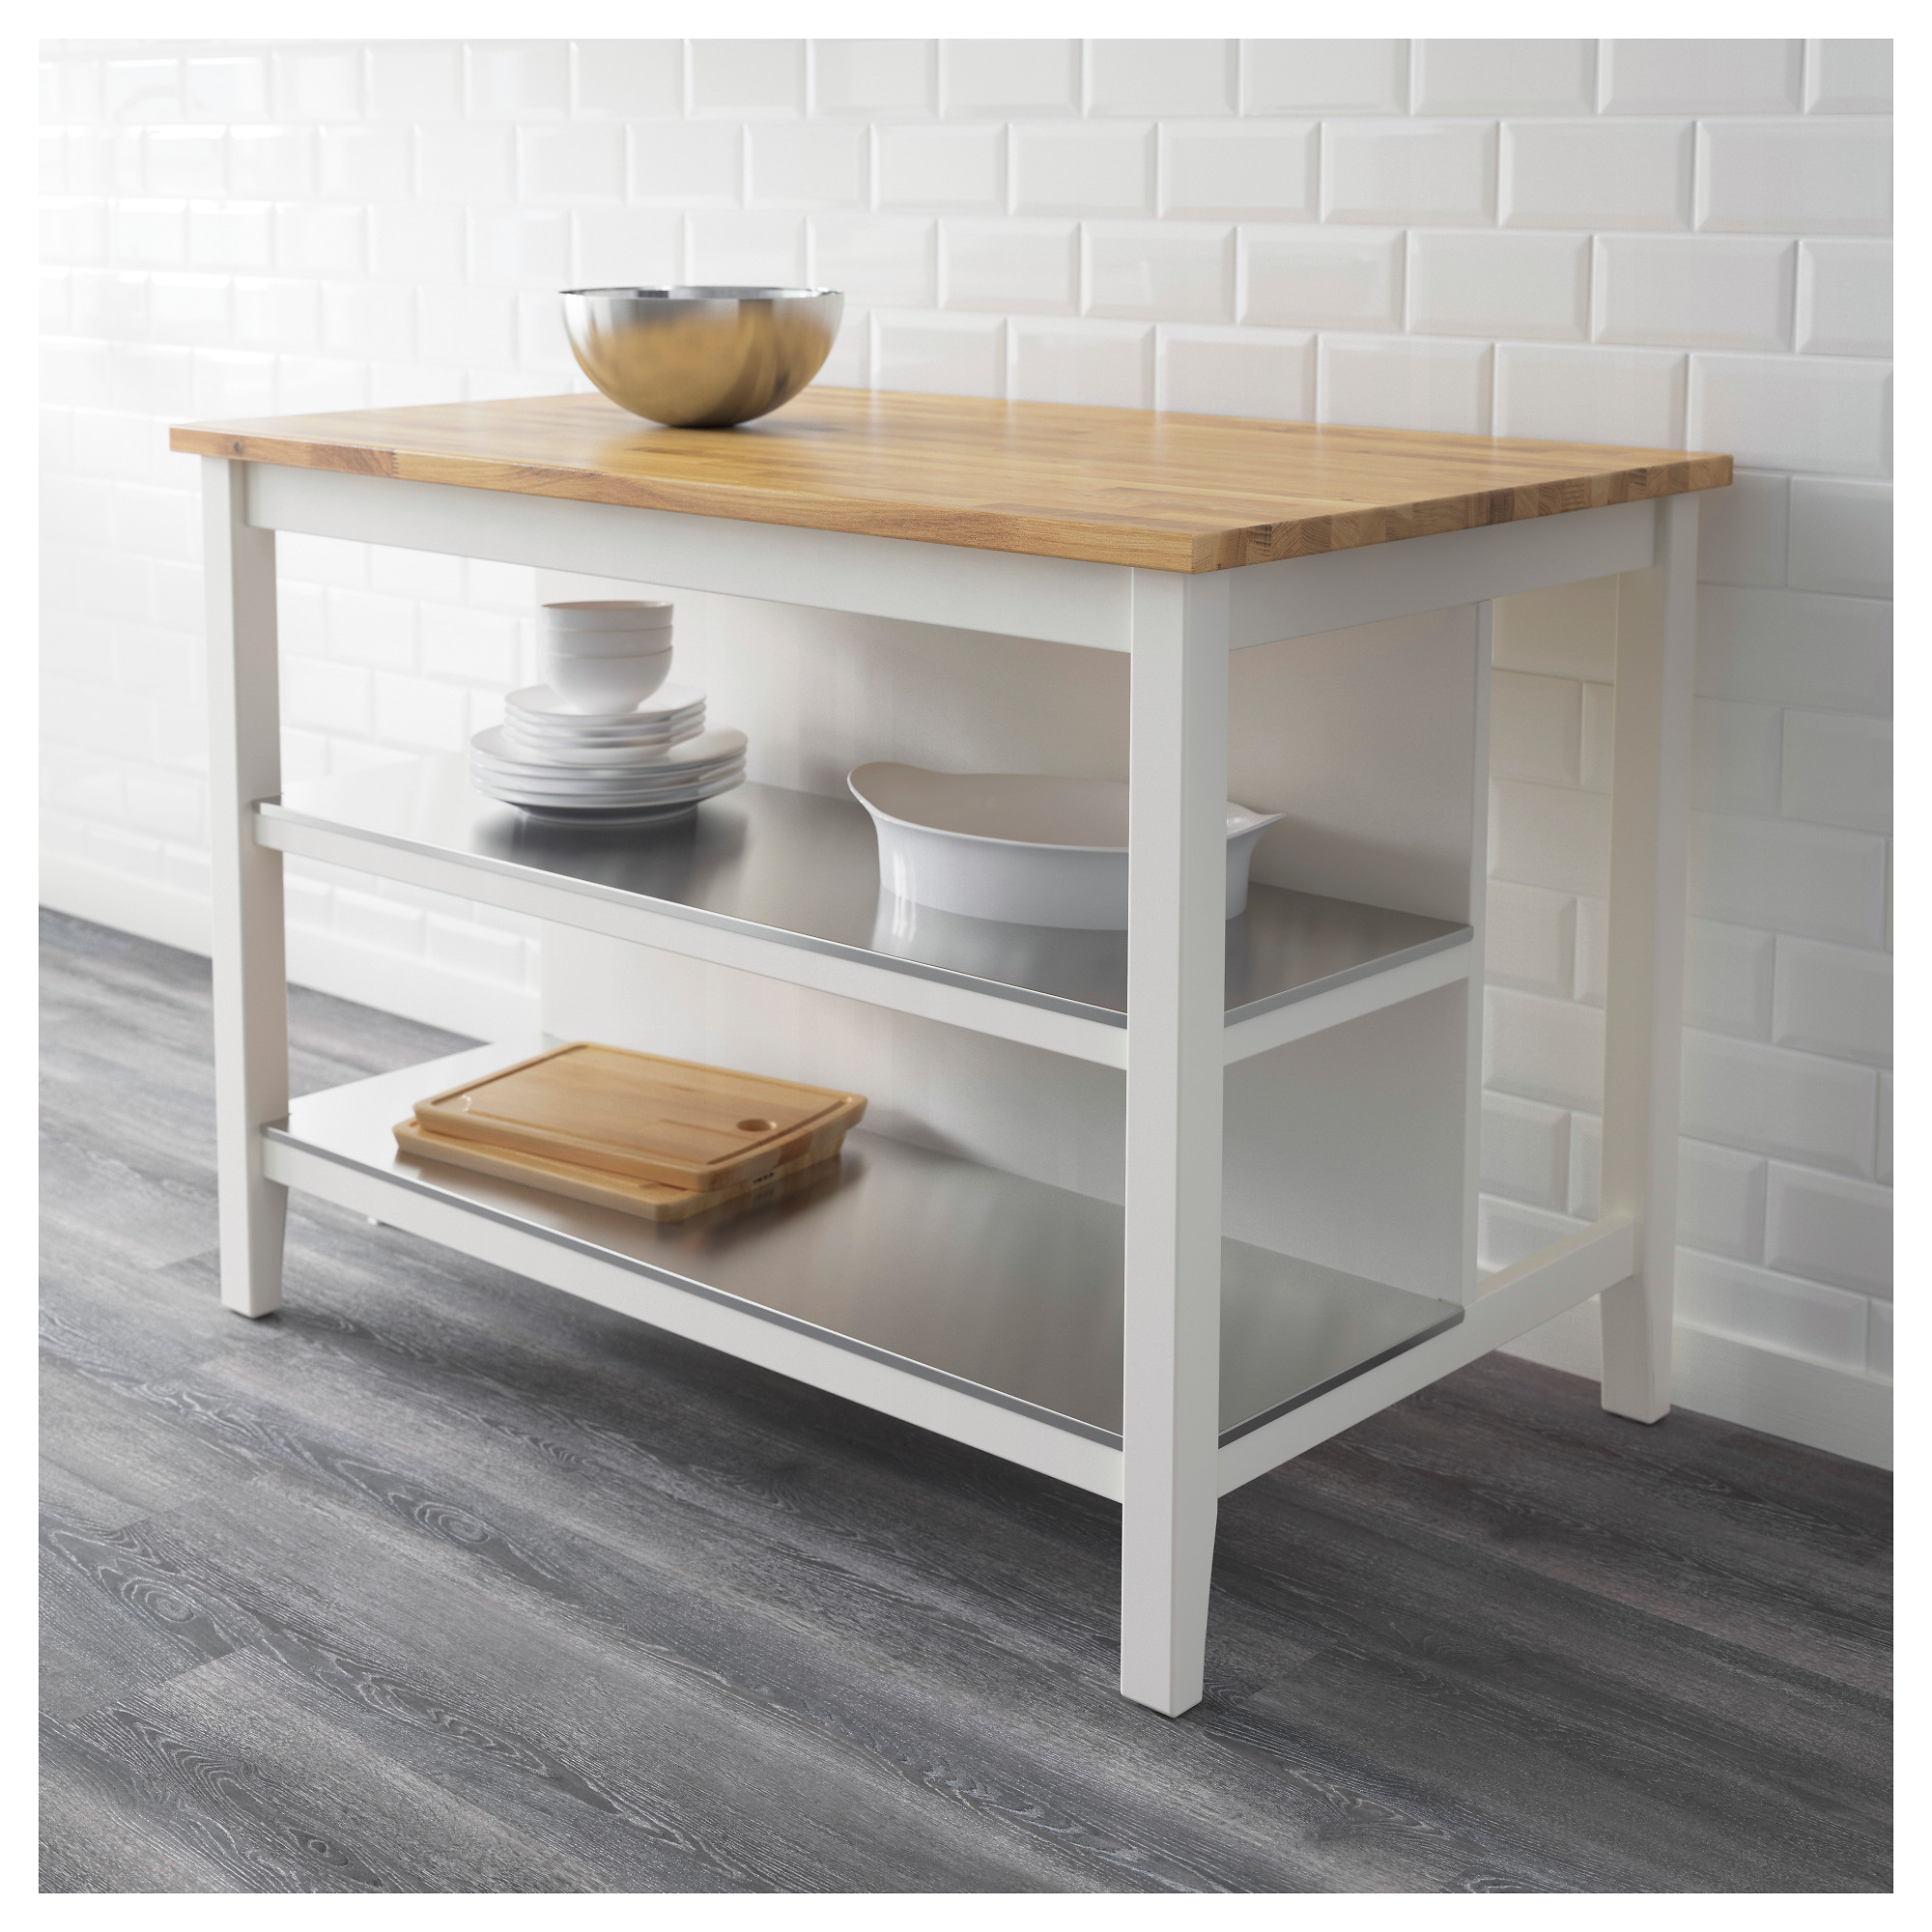 Uncategorized Kitchen Island Ikea stenstorp kitchen island ikea